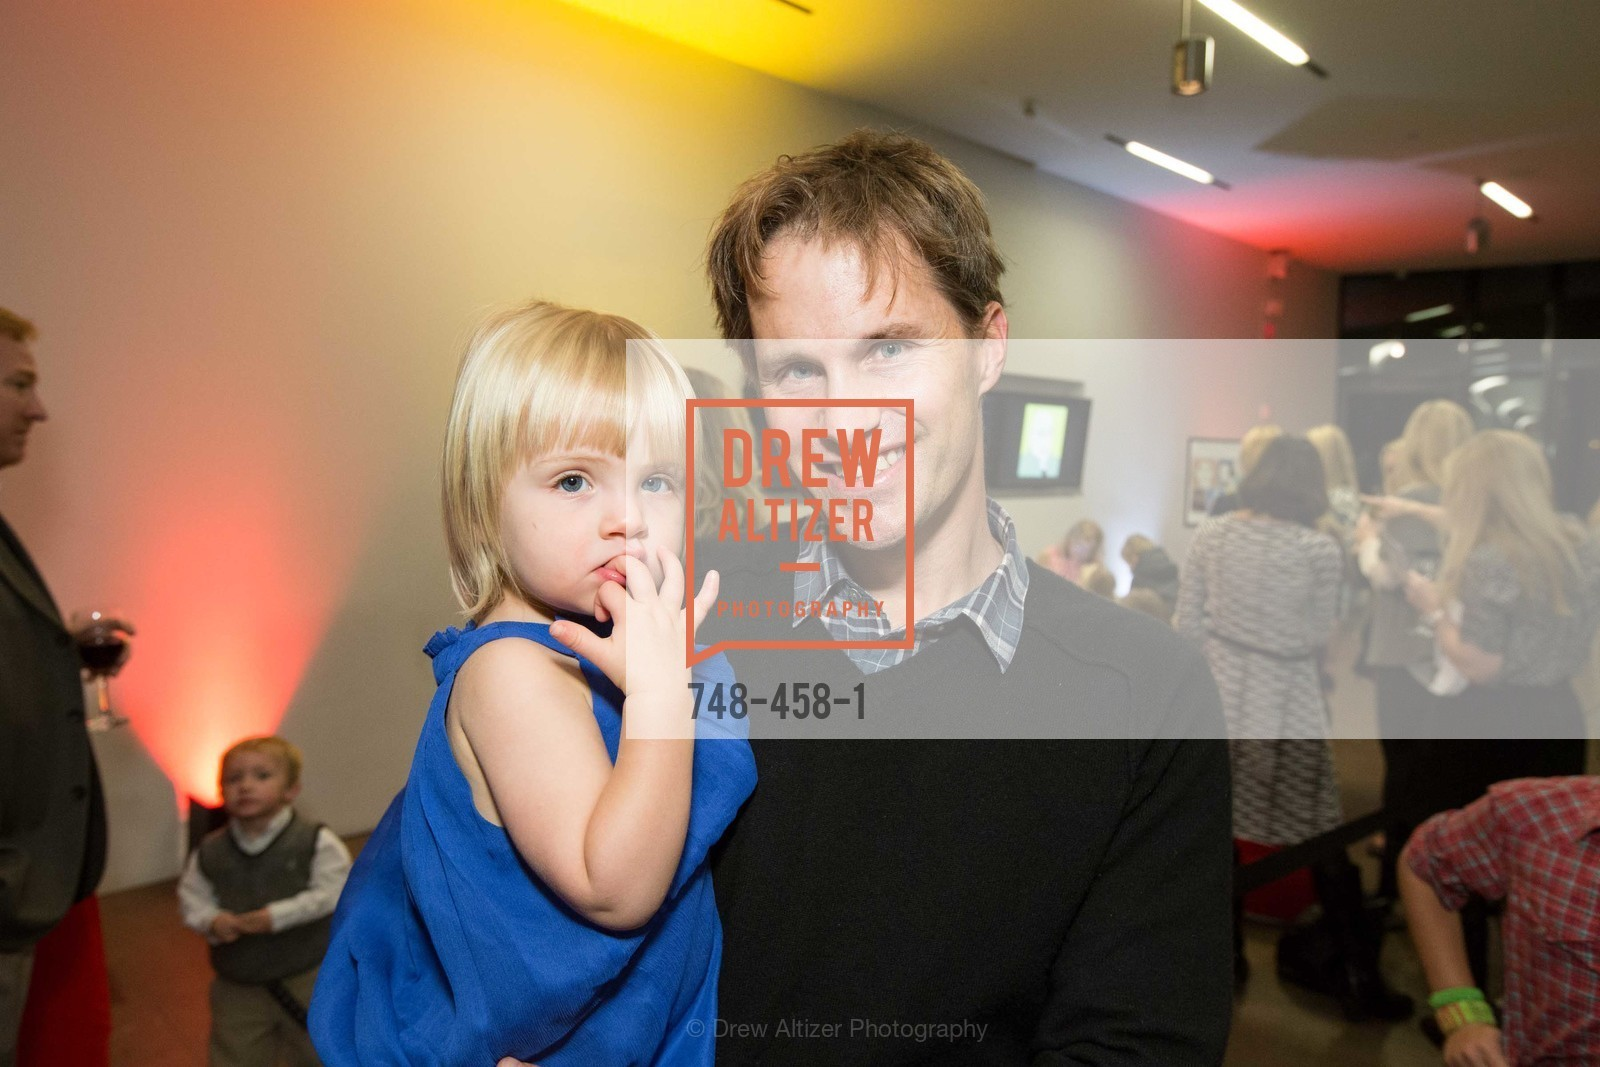 Naebe Hartz, Kevin Hartz, DE YOUNGSTERS A Bigger Family Party, US. US, January 10th, 2014,Drew Altizer, Drew Altizer Photography, full-service event agency, private events, San Francisco photographer, photographer California